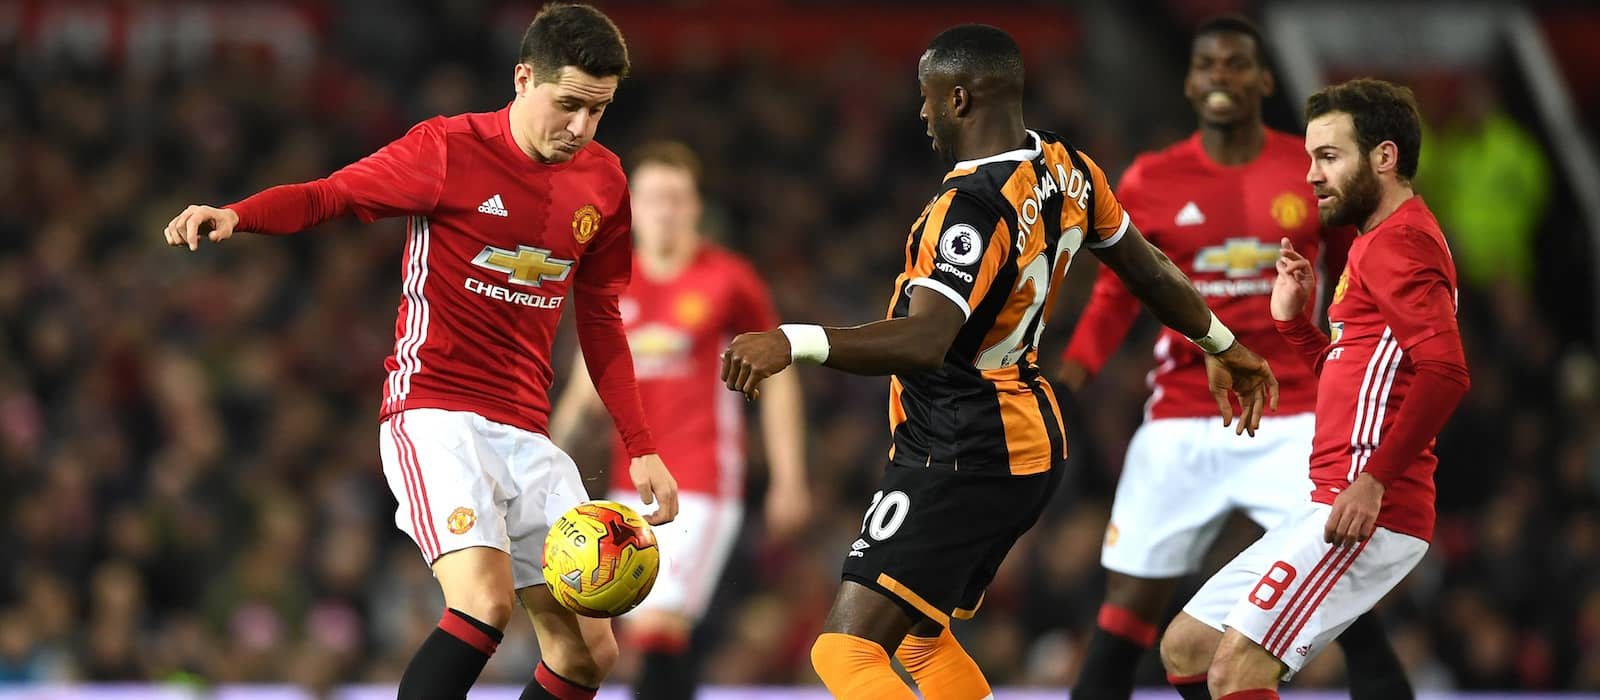 Manchester United fans delighted with Juan Mata's performance against Hull City